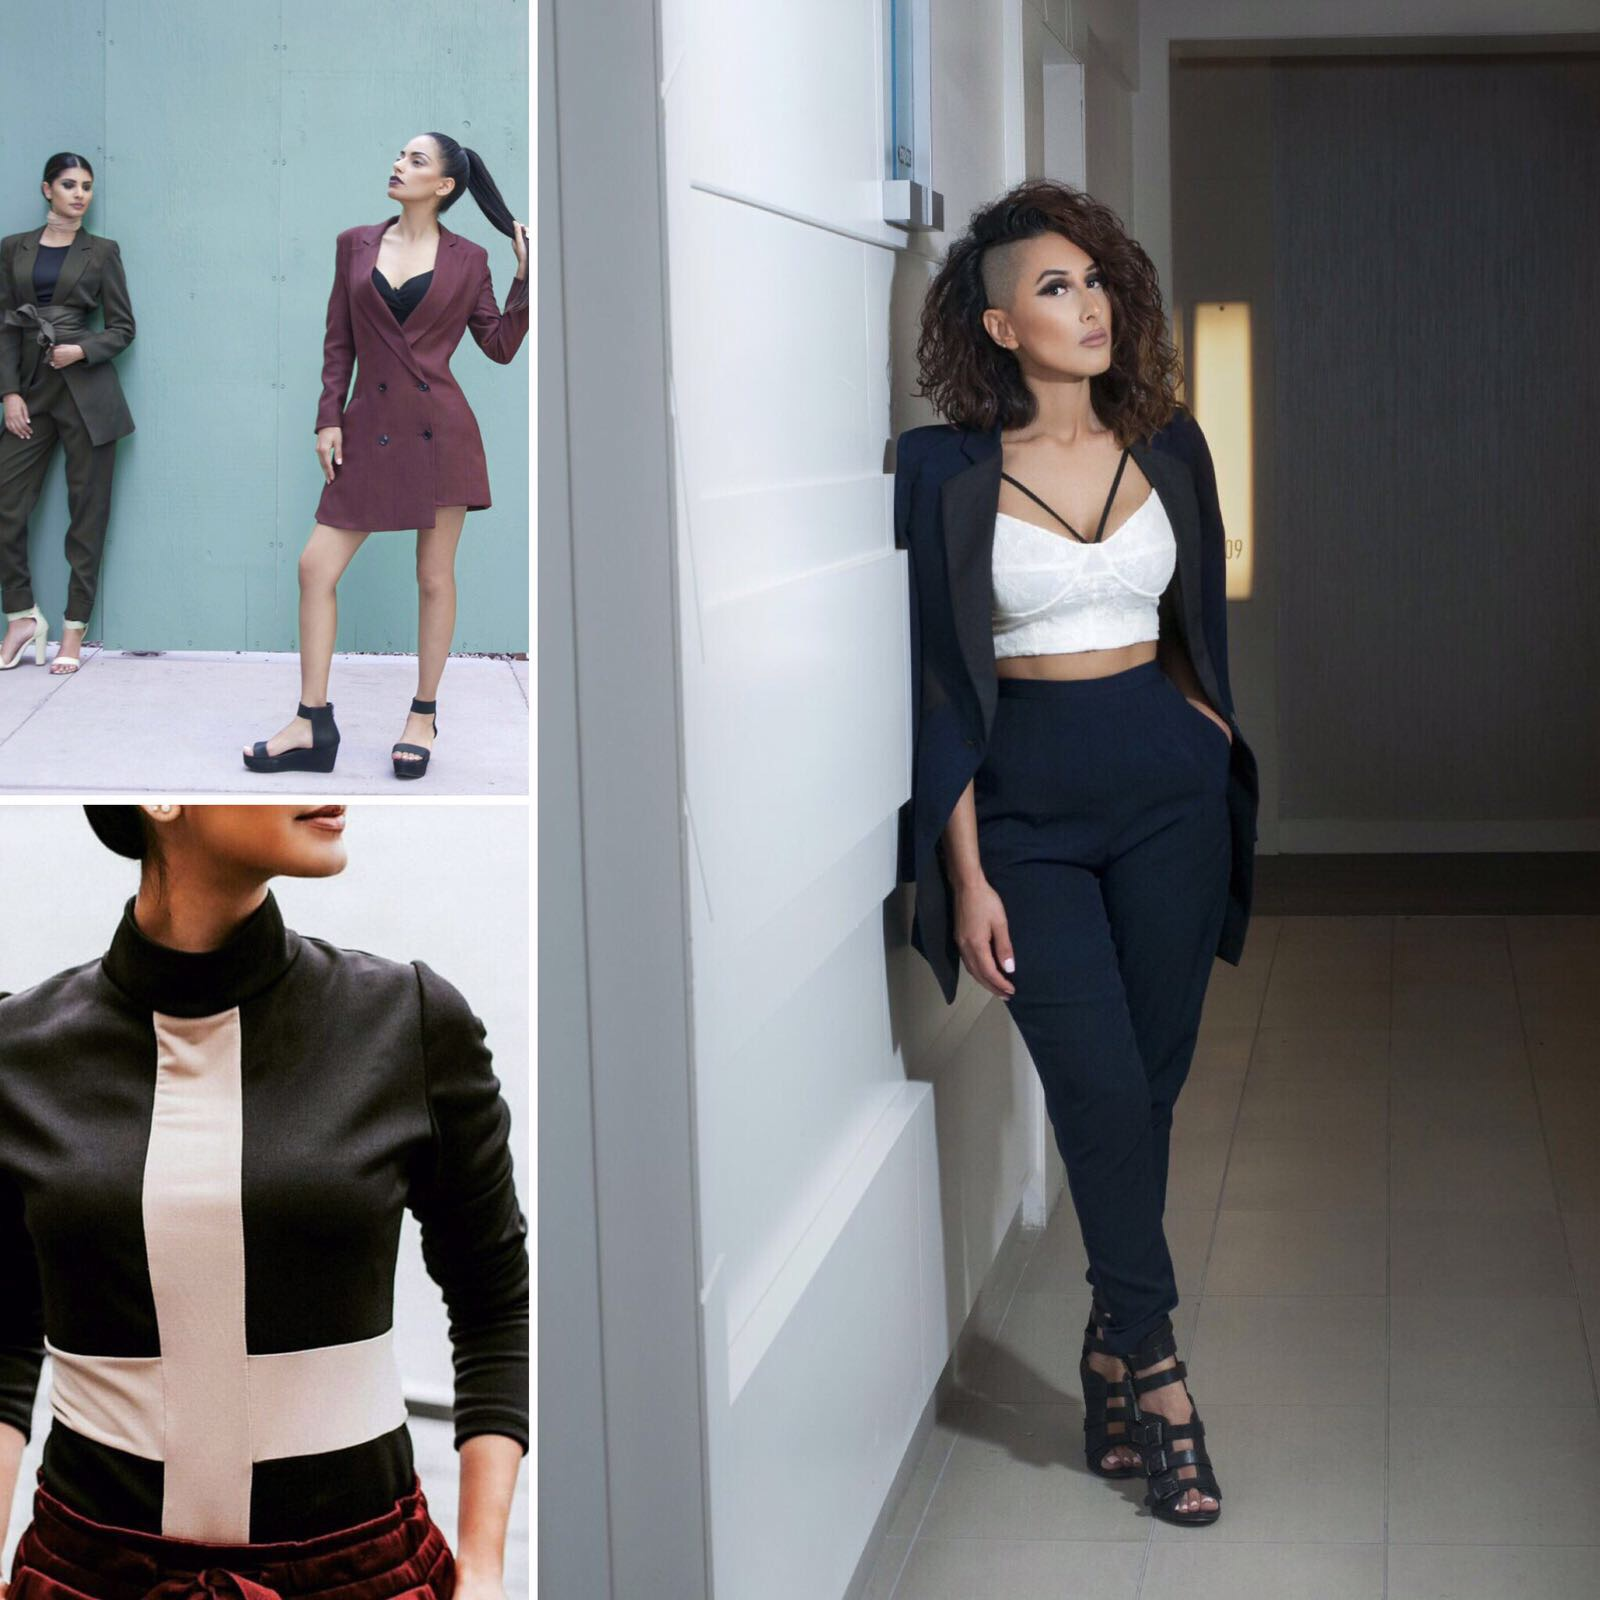 Make Room In Your Closet Ladies, PANACHE MMXVII Is Here To Fill The ...